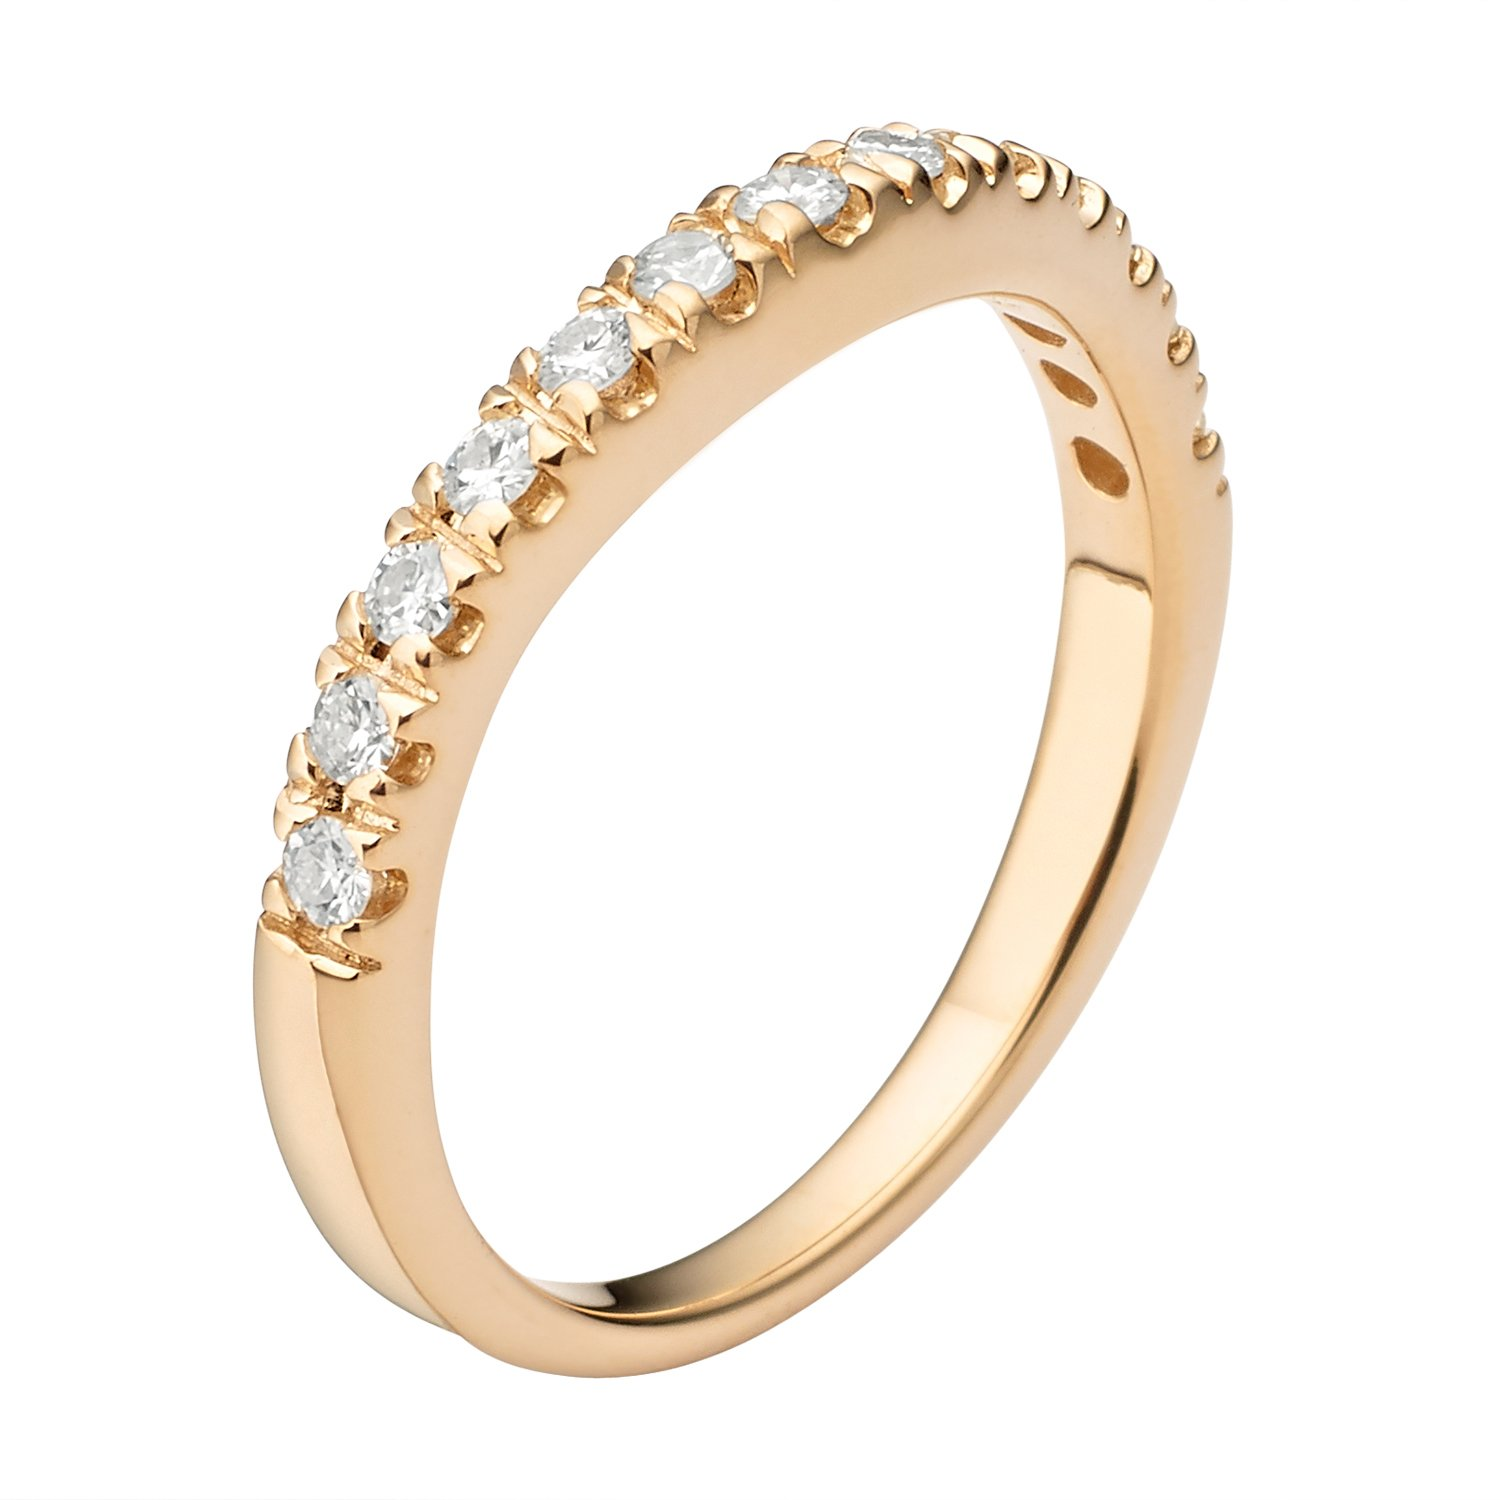 Forever Classic Yellow Gold 1.8mm Moissanite Wedding Band - size 6, 0.33cttw DEW By Charles & Colvard by Charles & Colvard (Image #2)